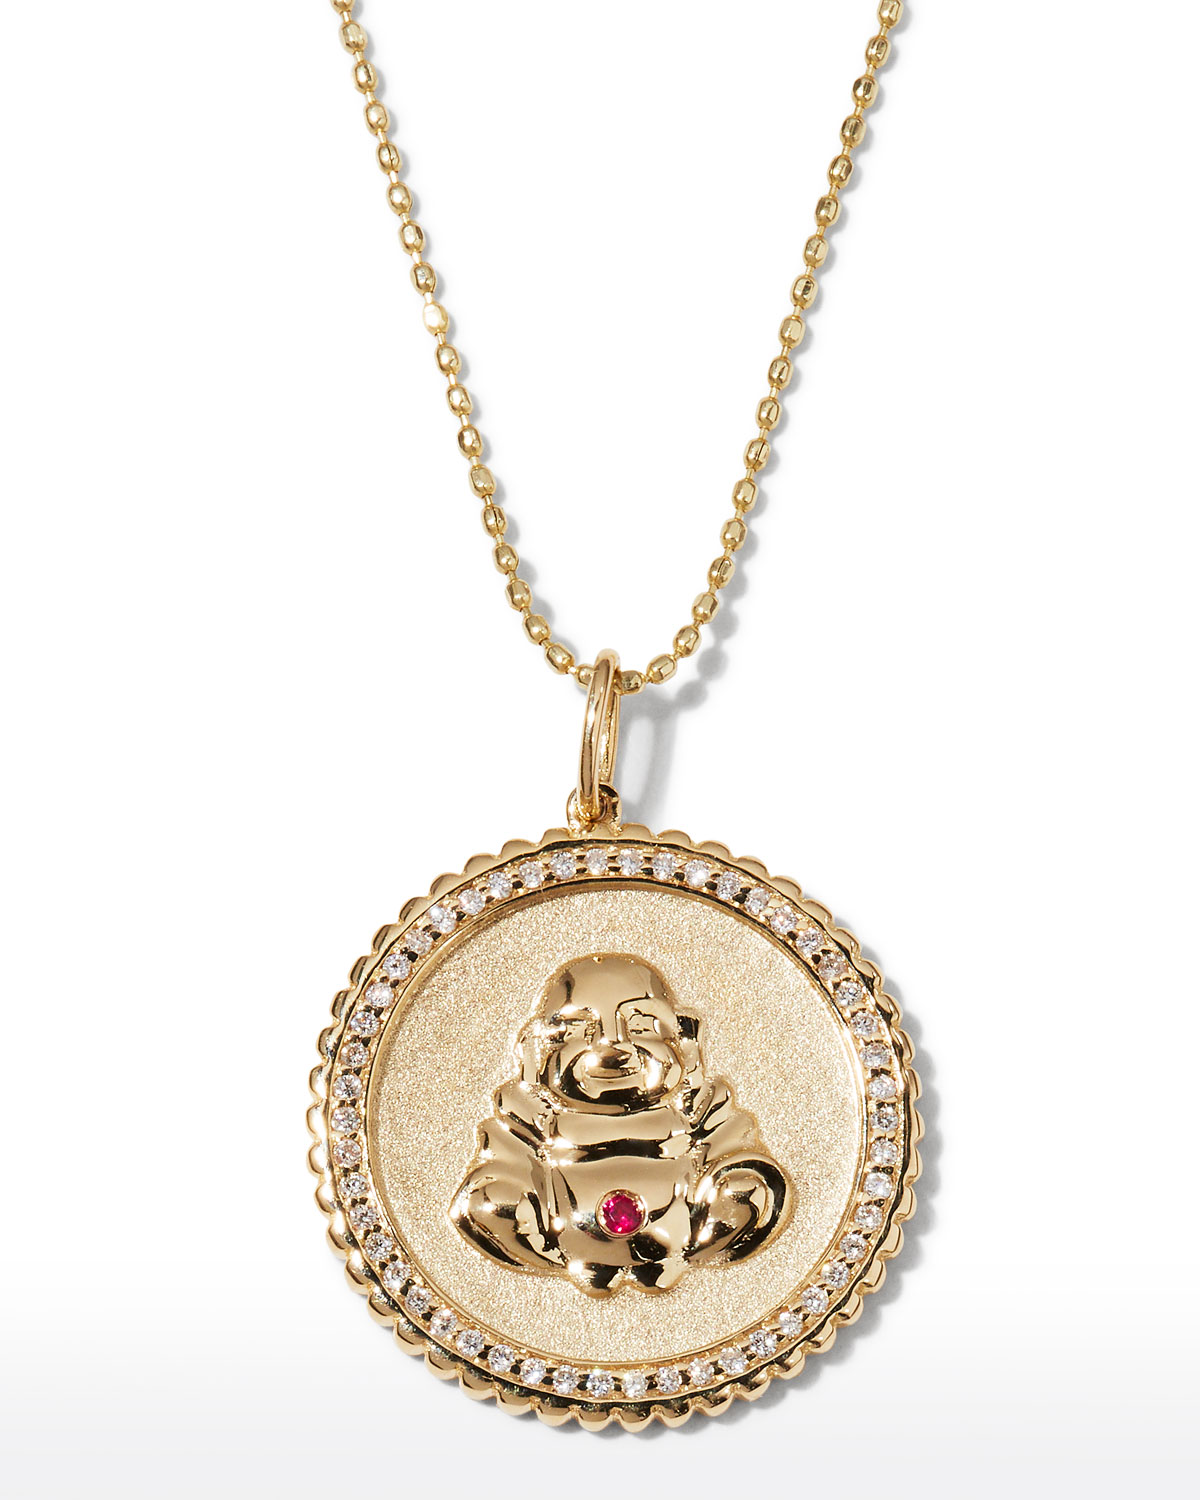 Sydney Evan 14k Buddha Coin Pendant Necklace with Diamonds